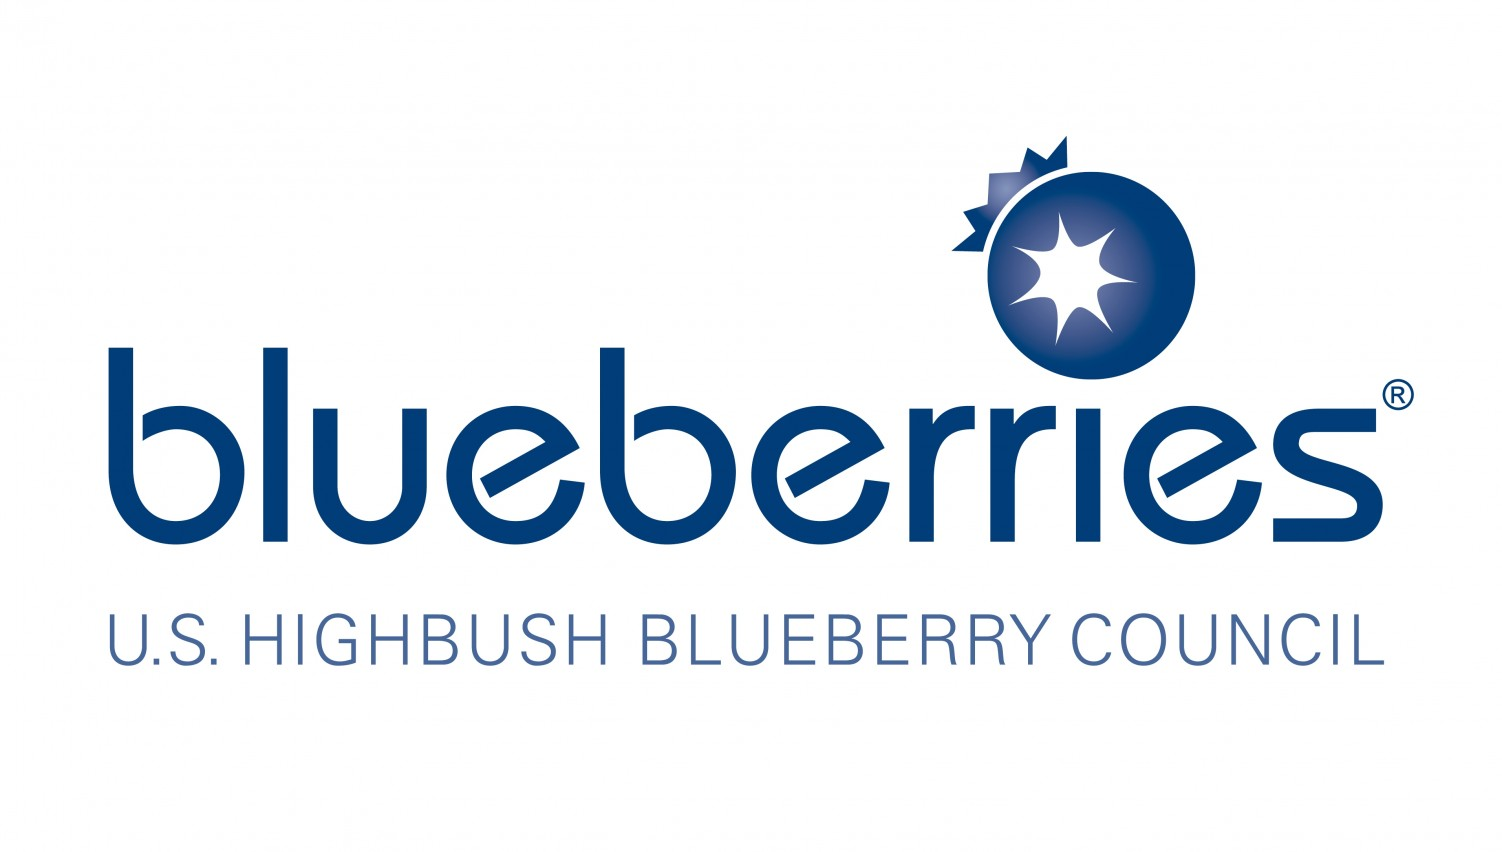 U.S Highbush Blueberry Council